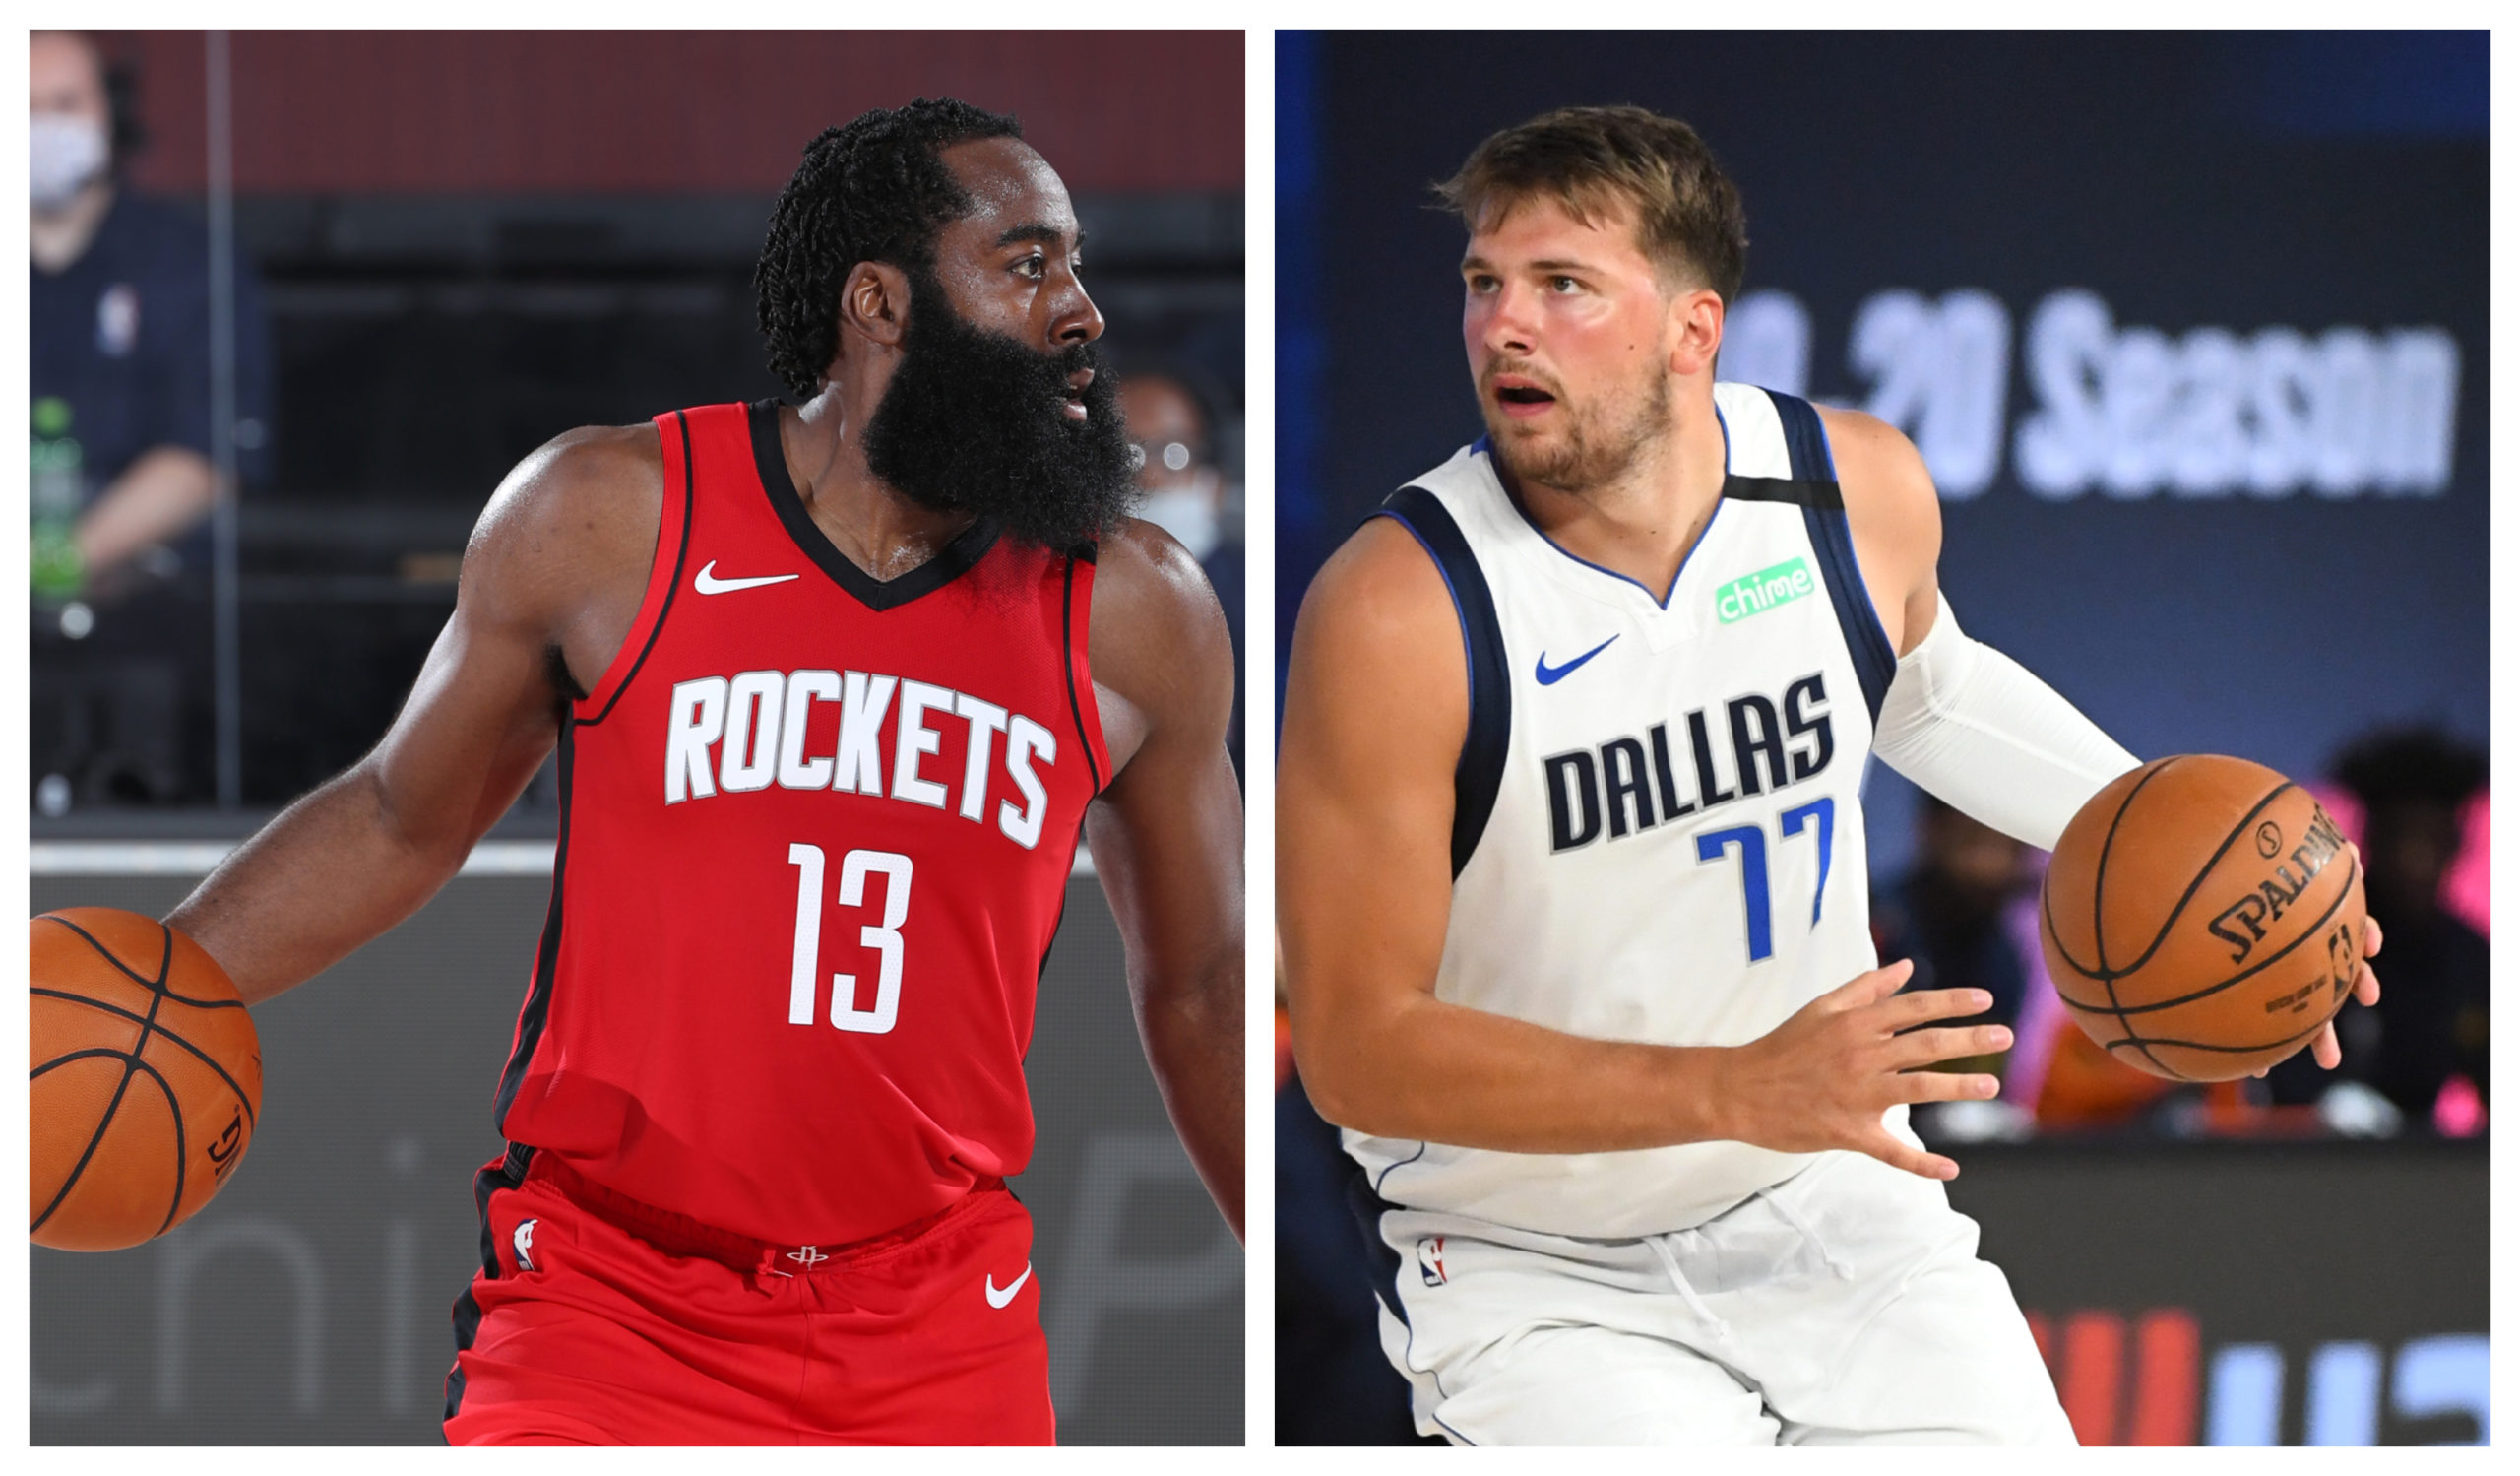 Friday NBA Odds, Picks and Predictions: How to Bet Rockets vs. Mavericks (July 31) article feature image